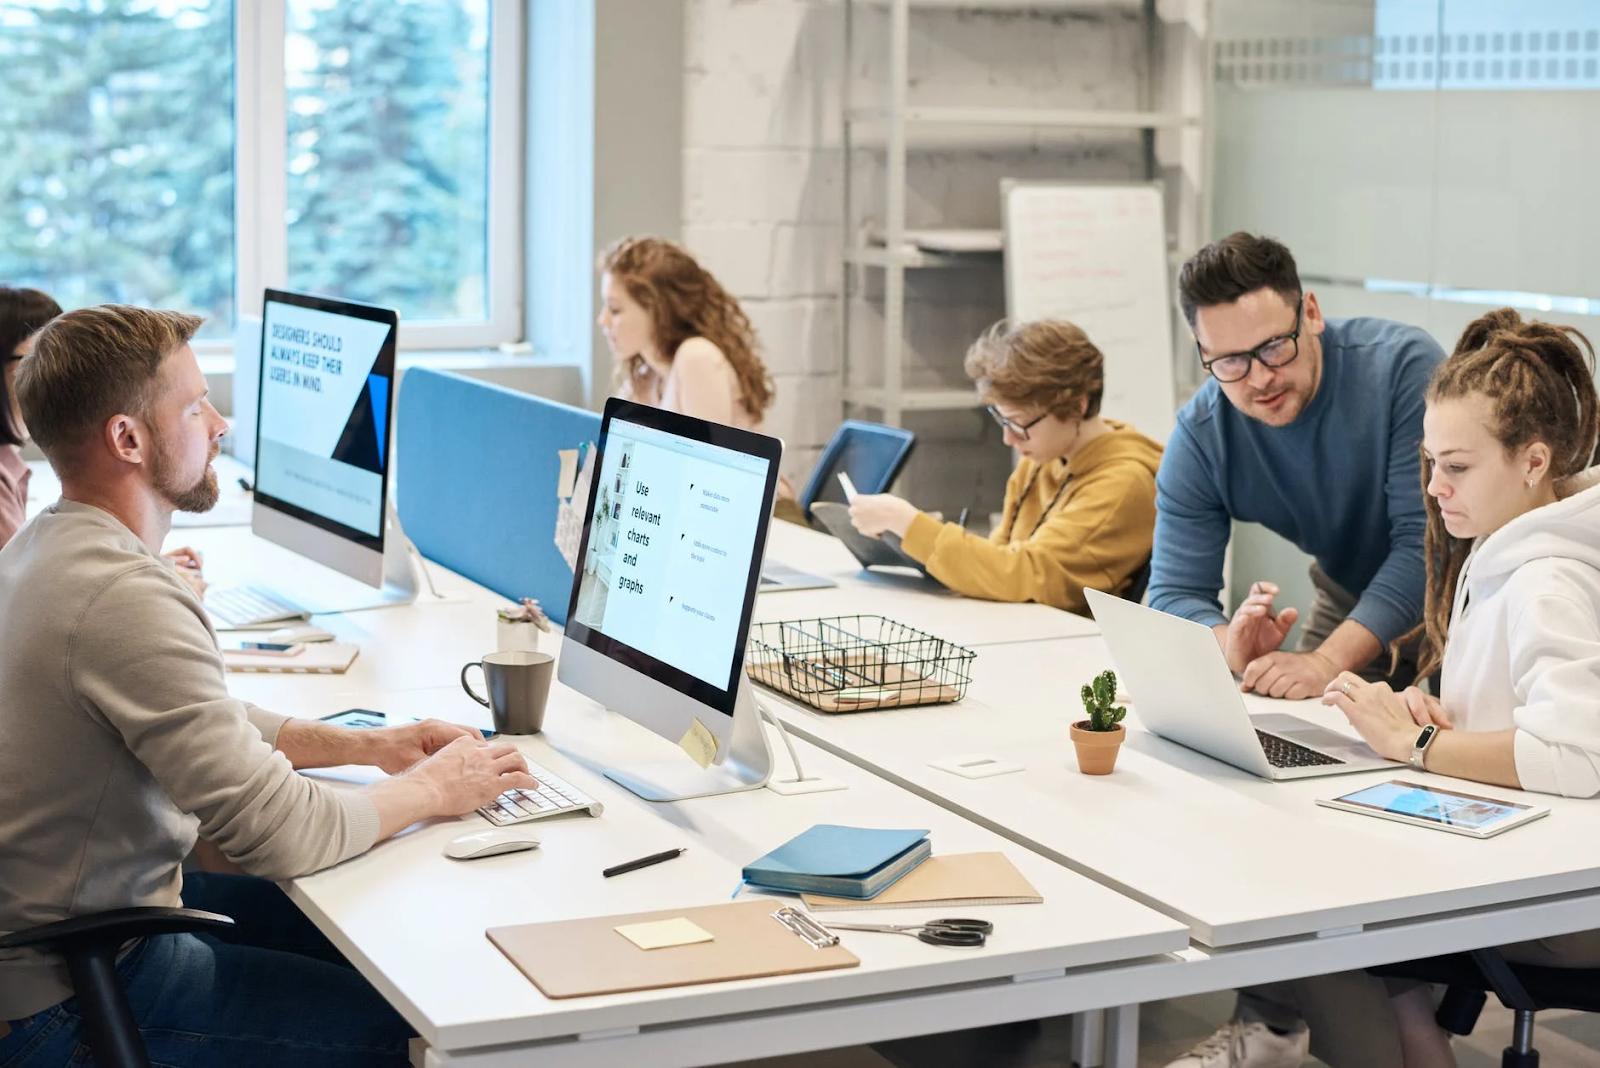 people working in front of the computer